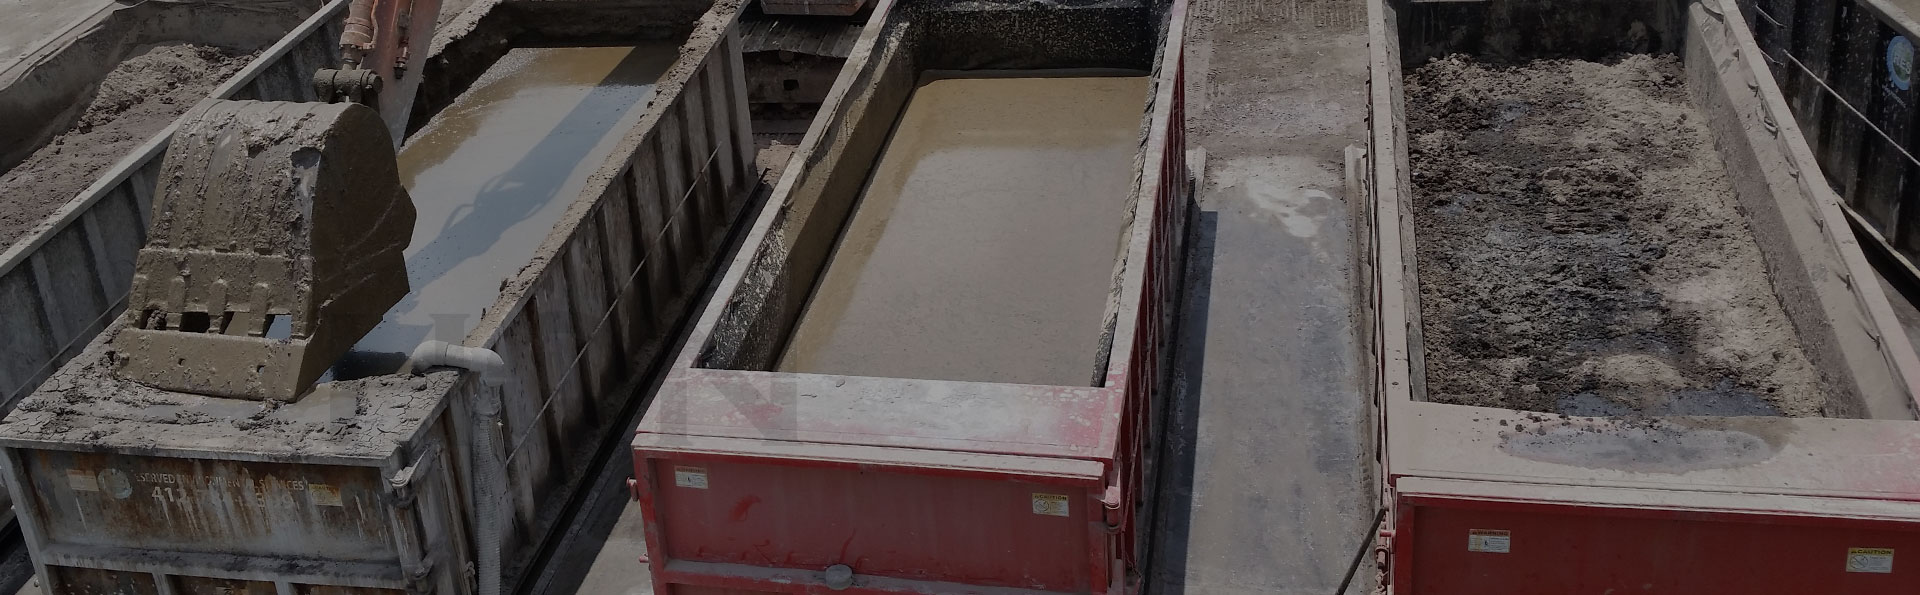 get a quote on dewatering box liners in canada